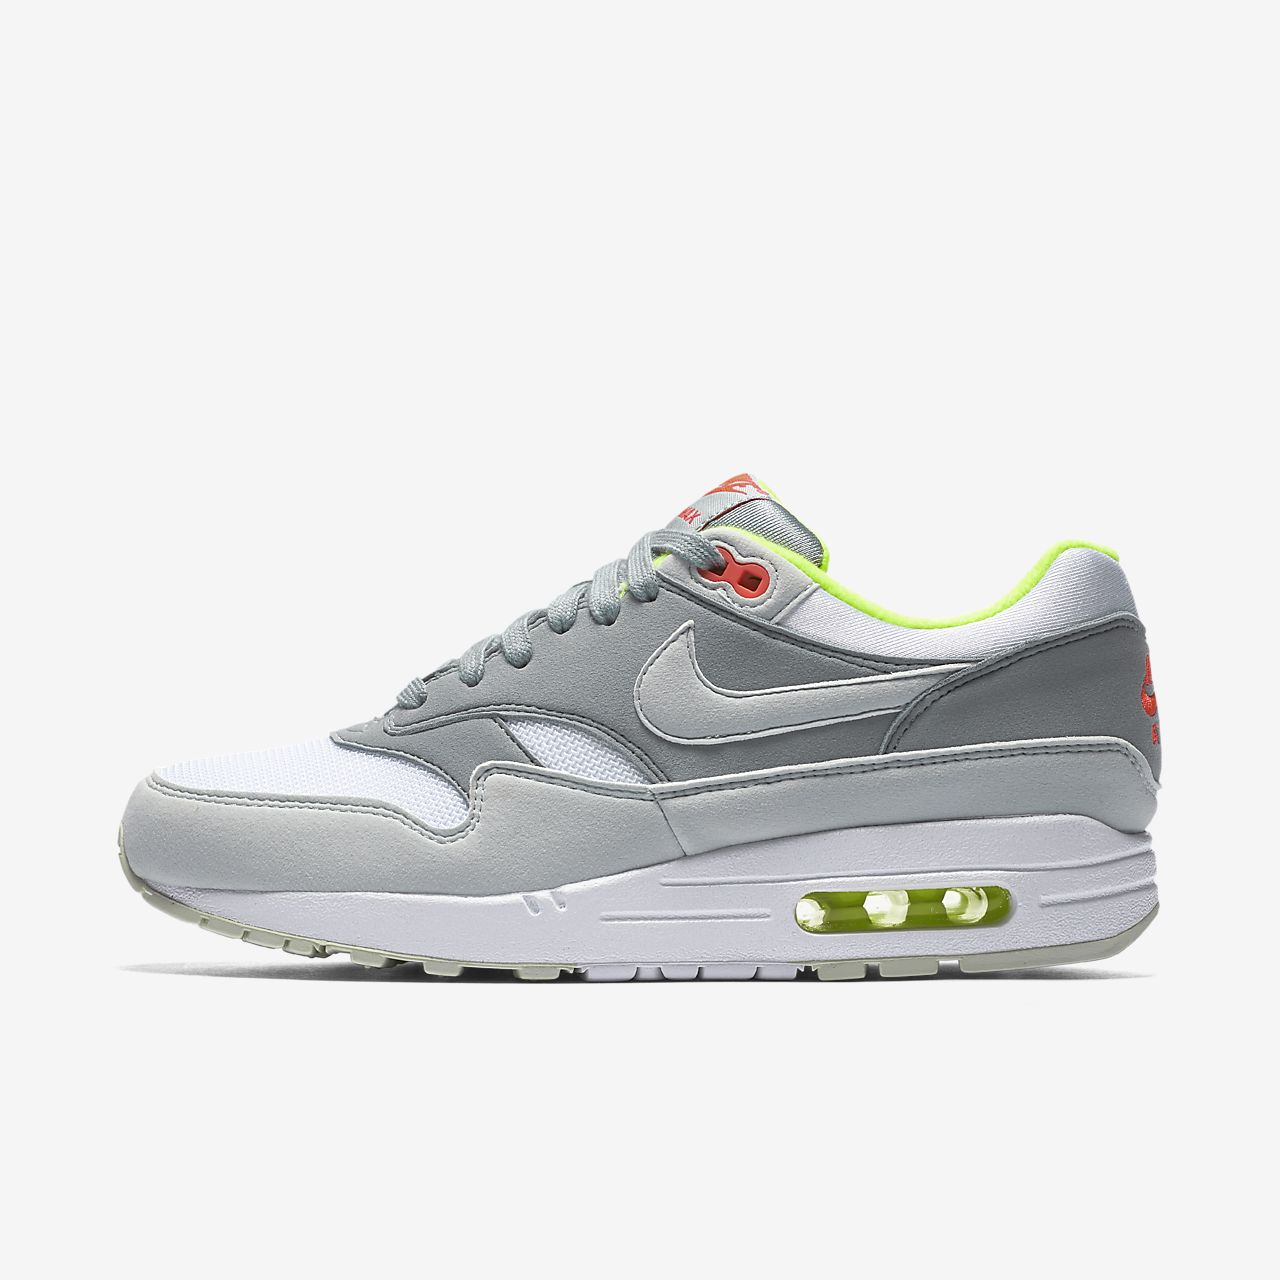 ireland air max shoes for women be967 a4a9a